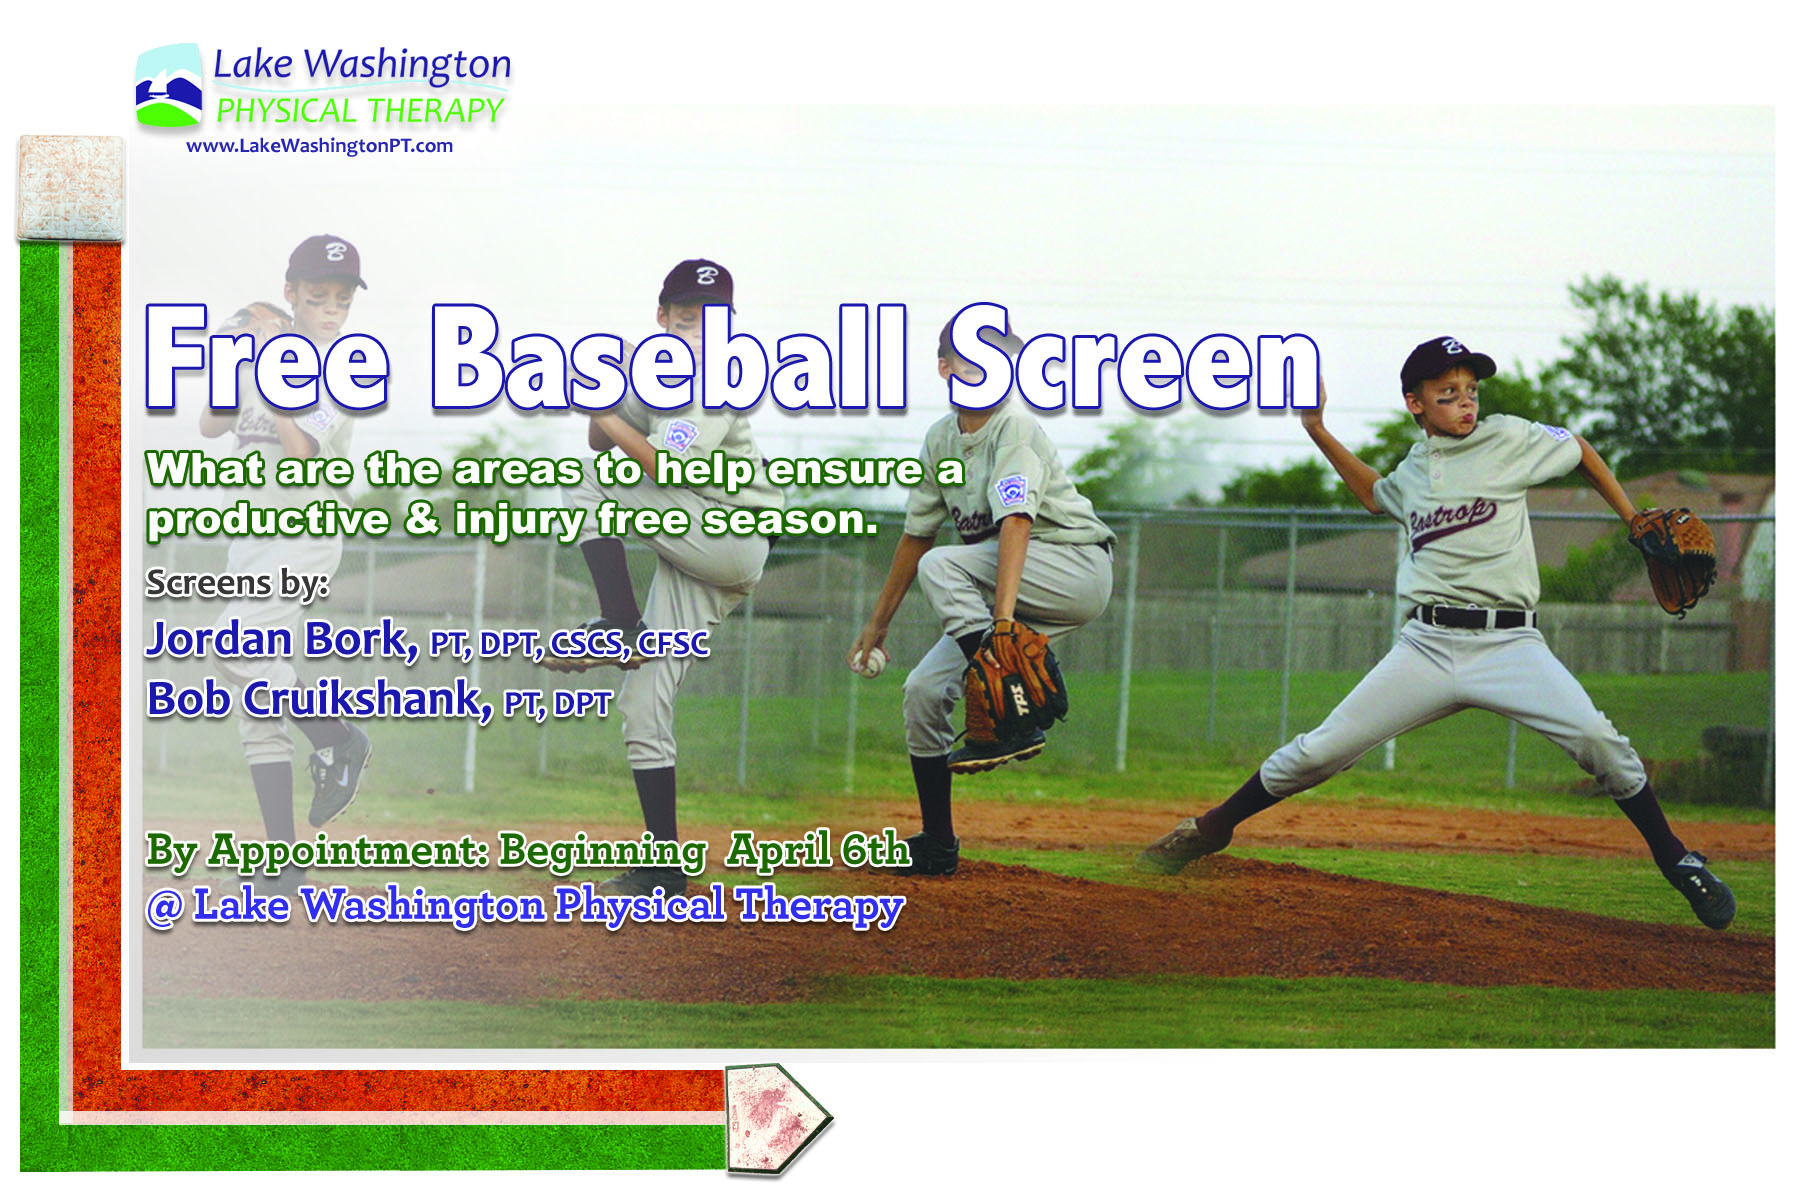 Bob Cruikshank, DPT  and  Jordan Bork, DPT  are excited to kick off the baseball season with a free injury screen & evaluation.  To get signed up simply call our front desk at 425-629-3502  The Free 45 minute screenings begin Saturday April 6th and will run for the month of April. This is a comprehensive 3 page and 45 minute screen that will help you or your athlete have increased performance and injury prevention.  Questions: email Bob at BobCruikshank@LakeWashingtonPT.com